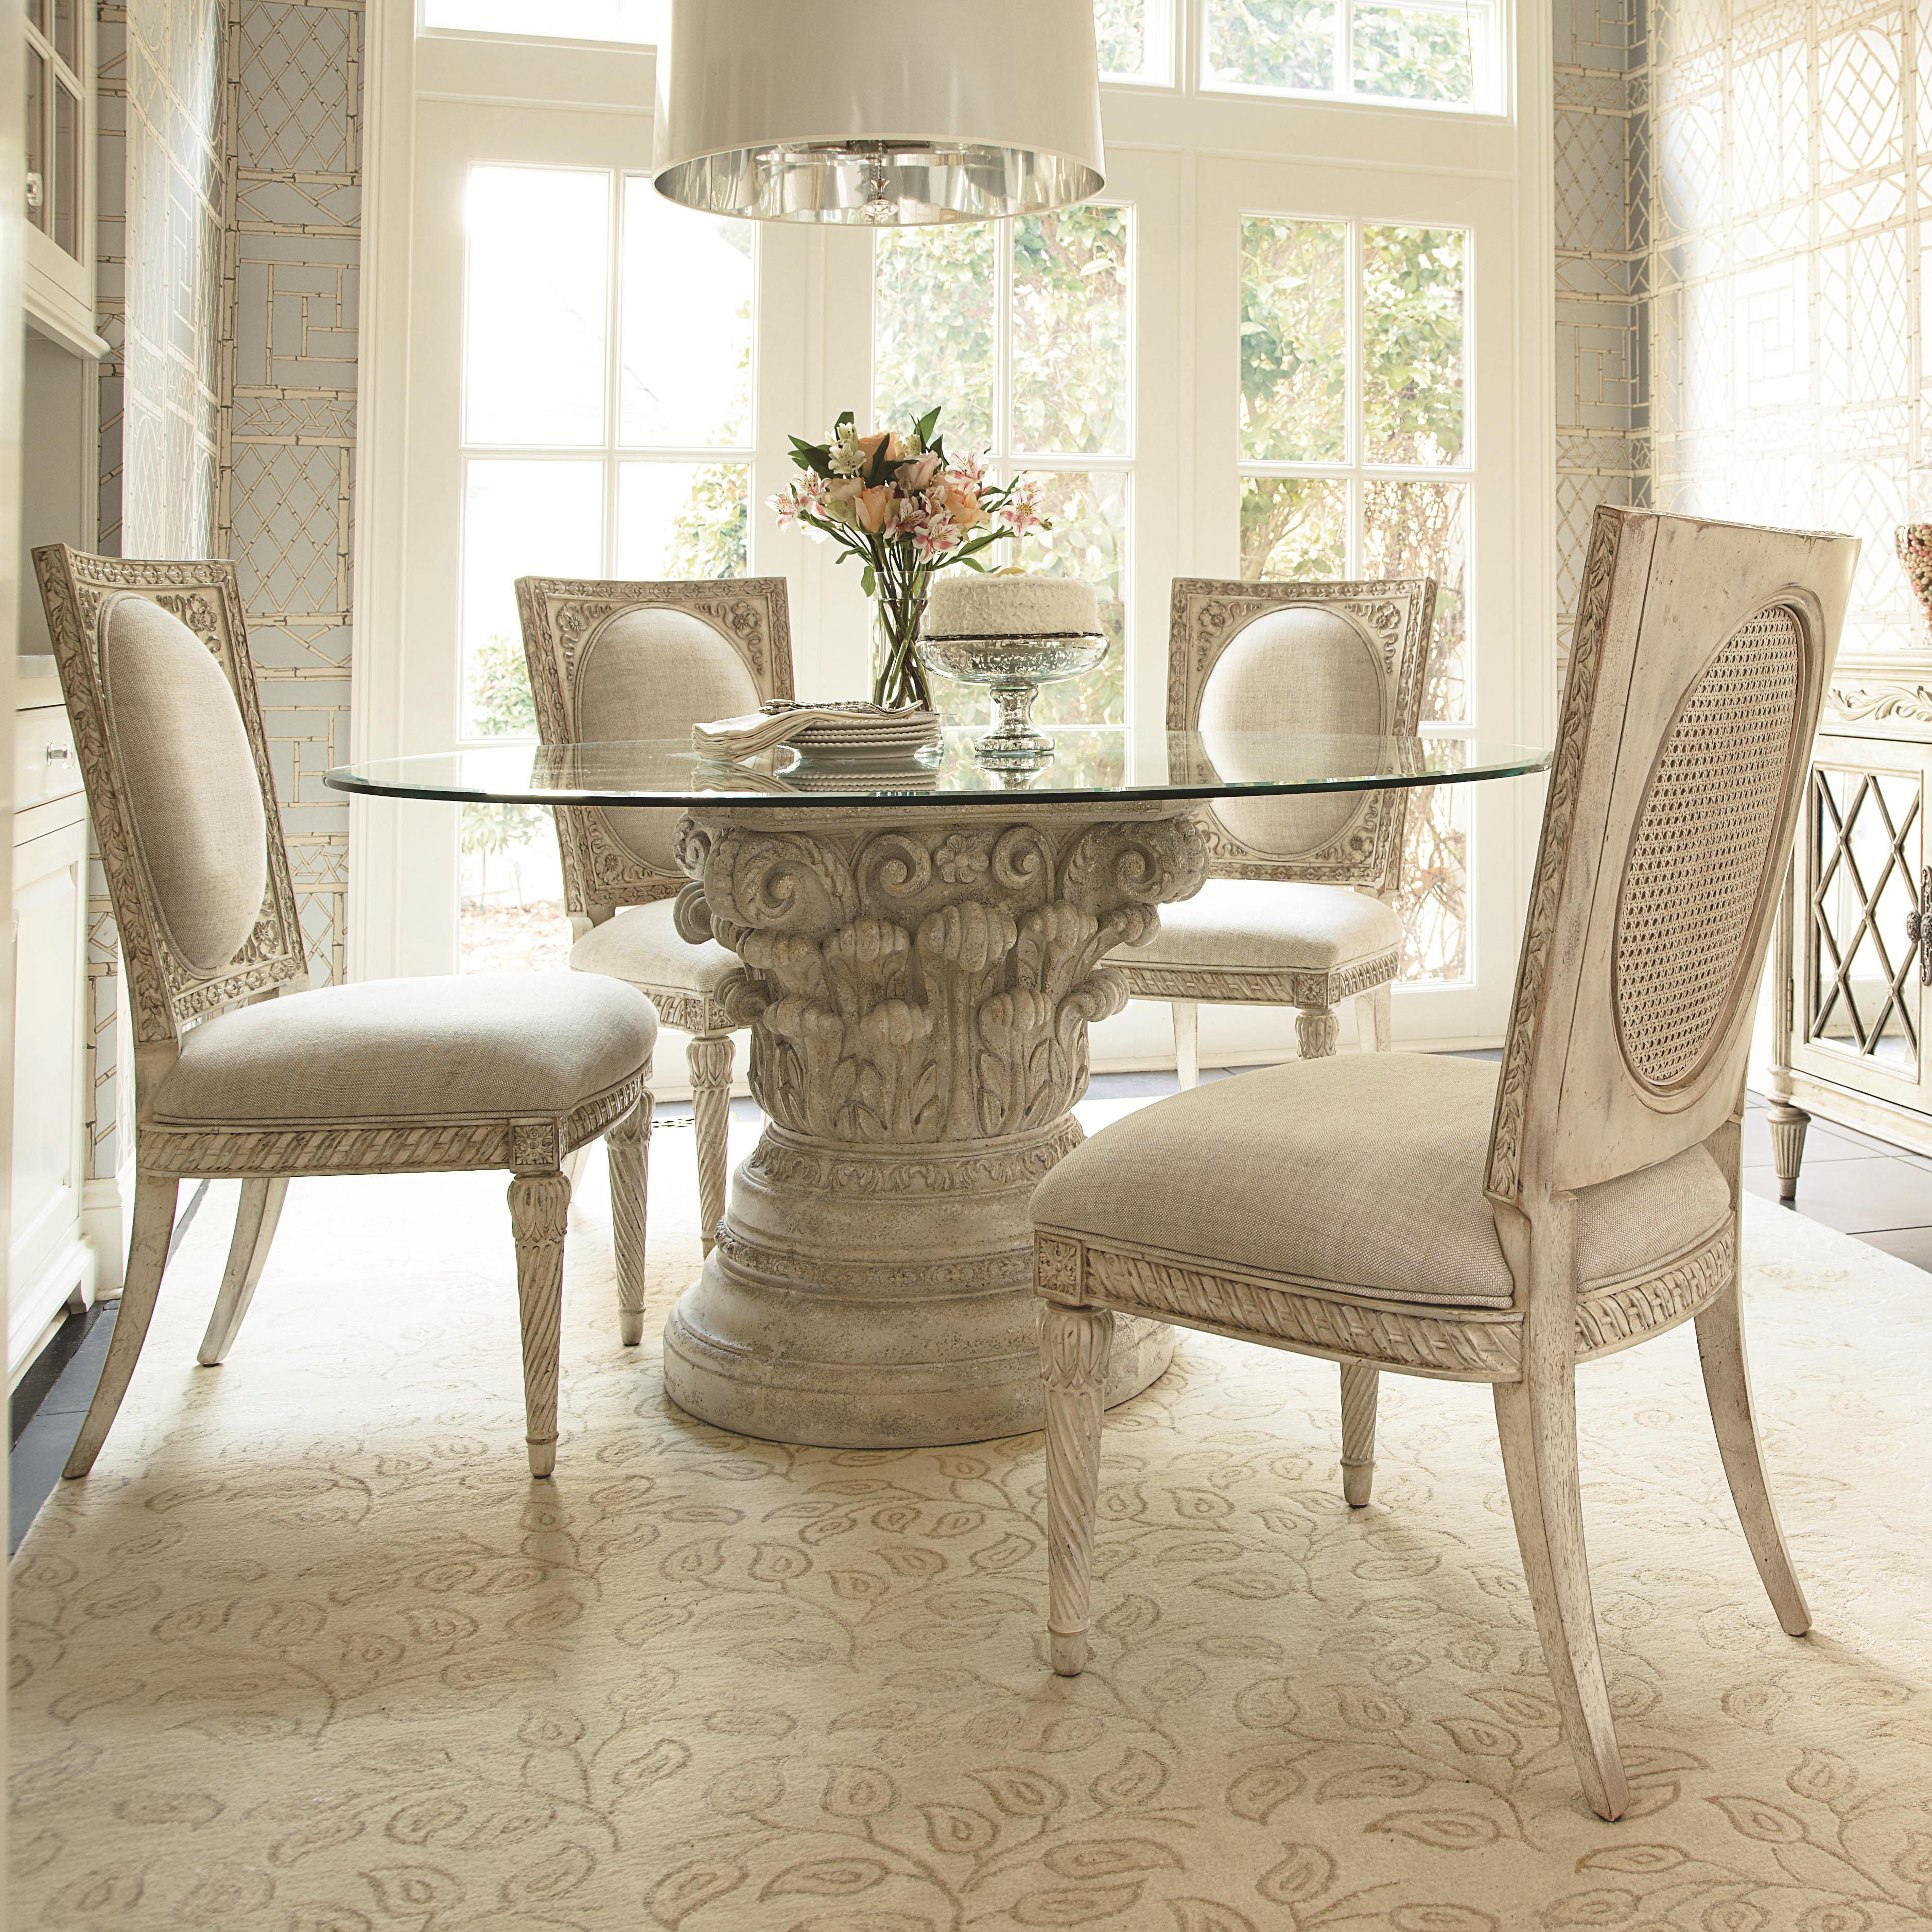 Image of: round pedestal accent table